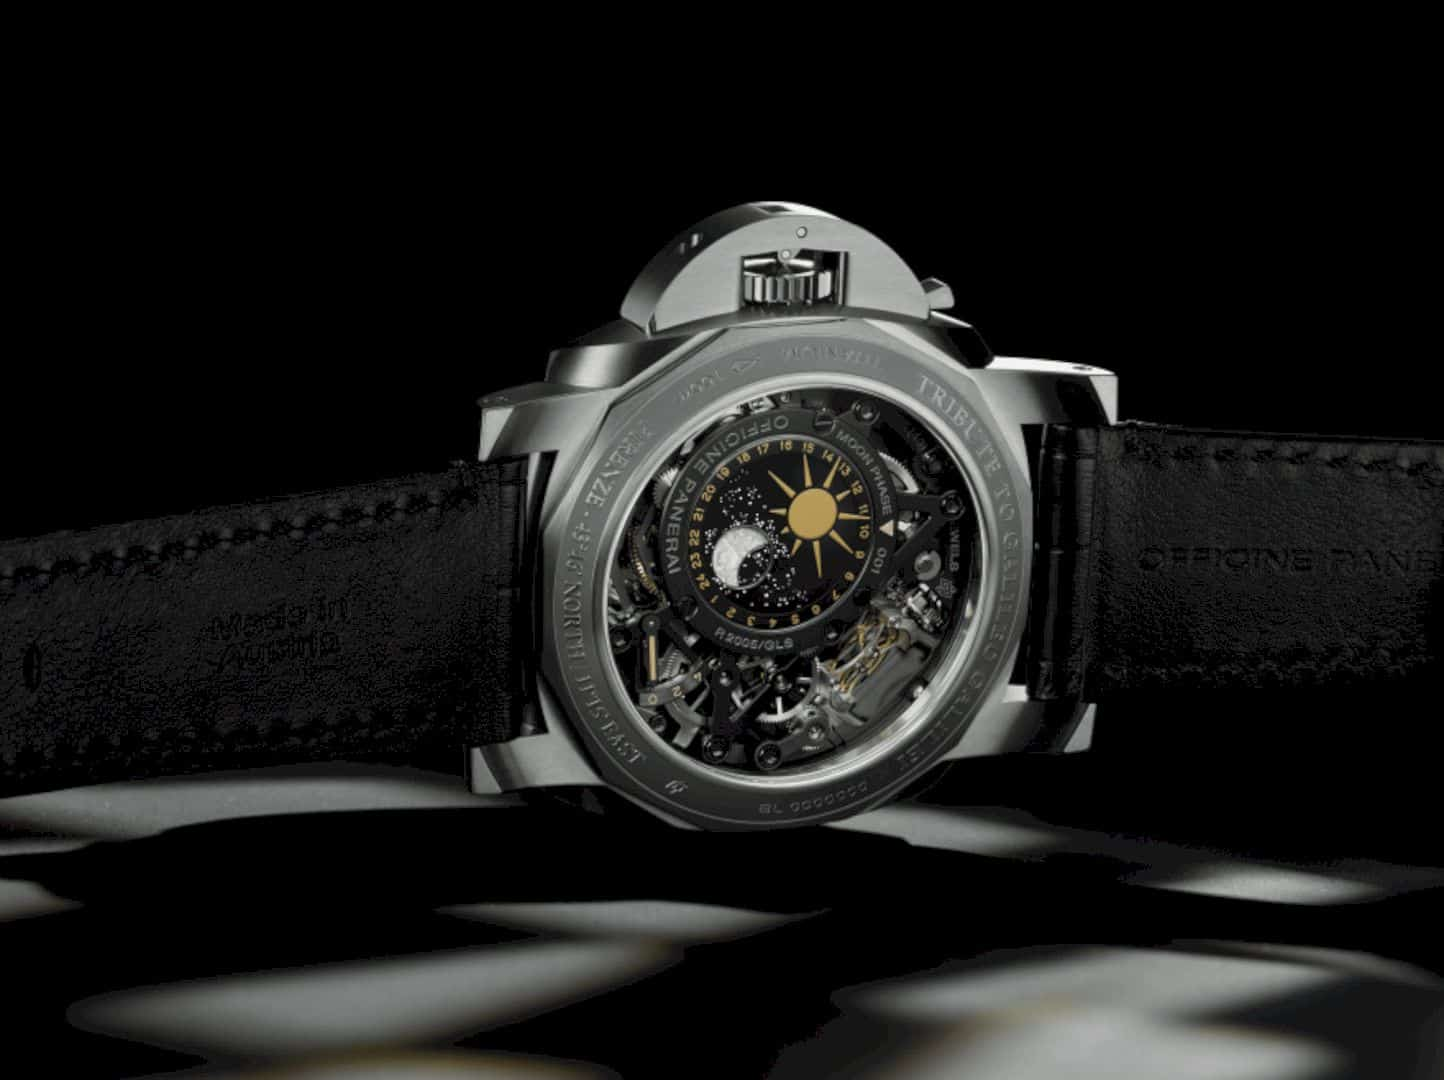 L'Astronomo Luminor 1950 Tourbillon Watch with Moon Phases Equation